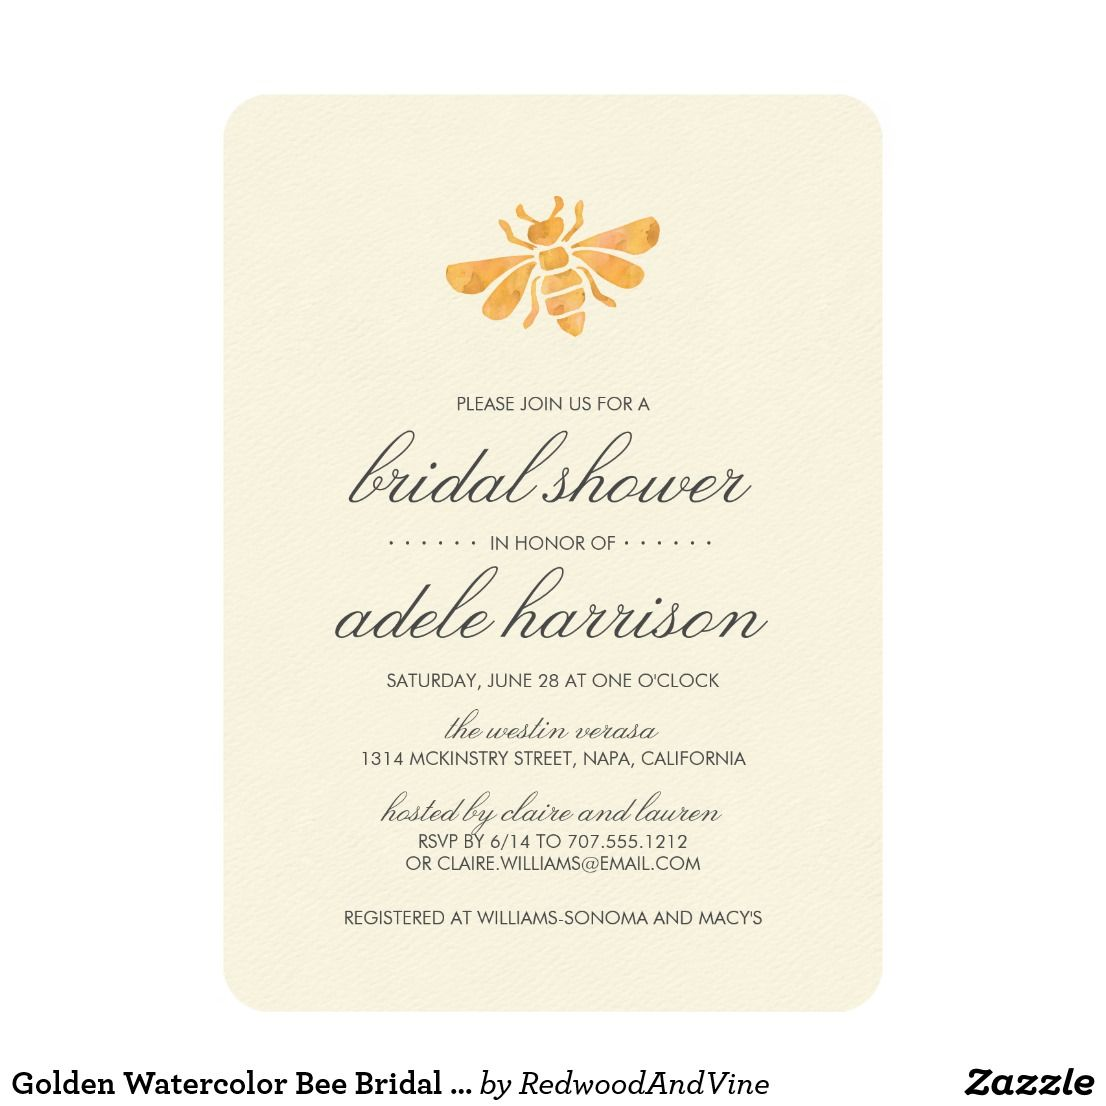 Golden Watercolor Bee Bridal Shower Card For The Nature Loving Bride